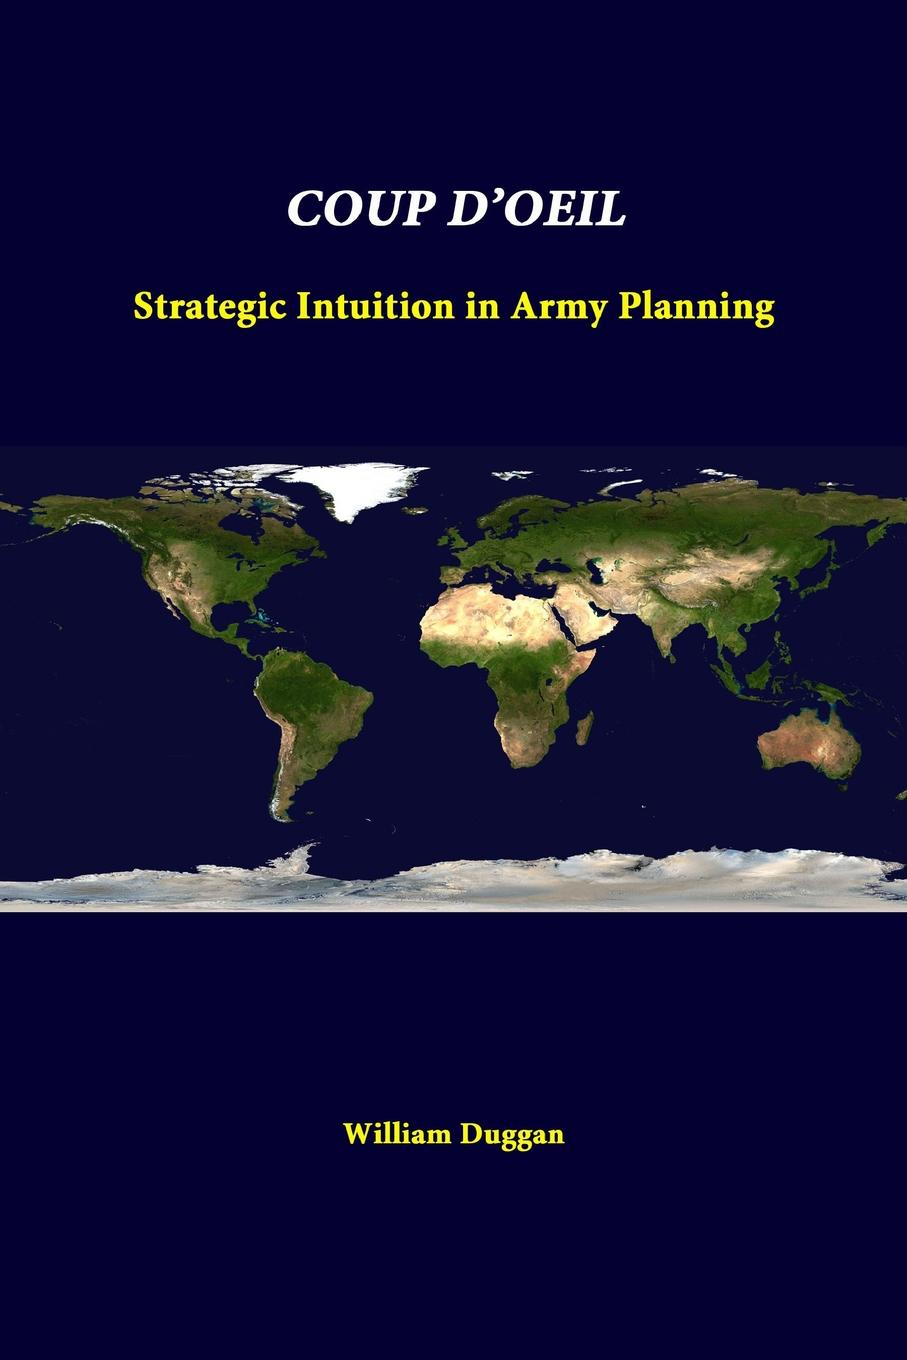 William Duggan, Strategic Studies Institute Coup D.Oeil. Strategic Intuition In Army Planning methods in paleoethnobotany studies of cereal cultivation